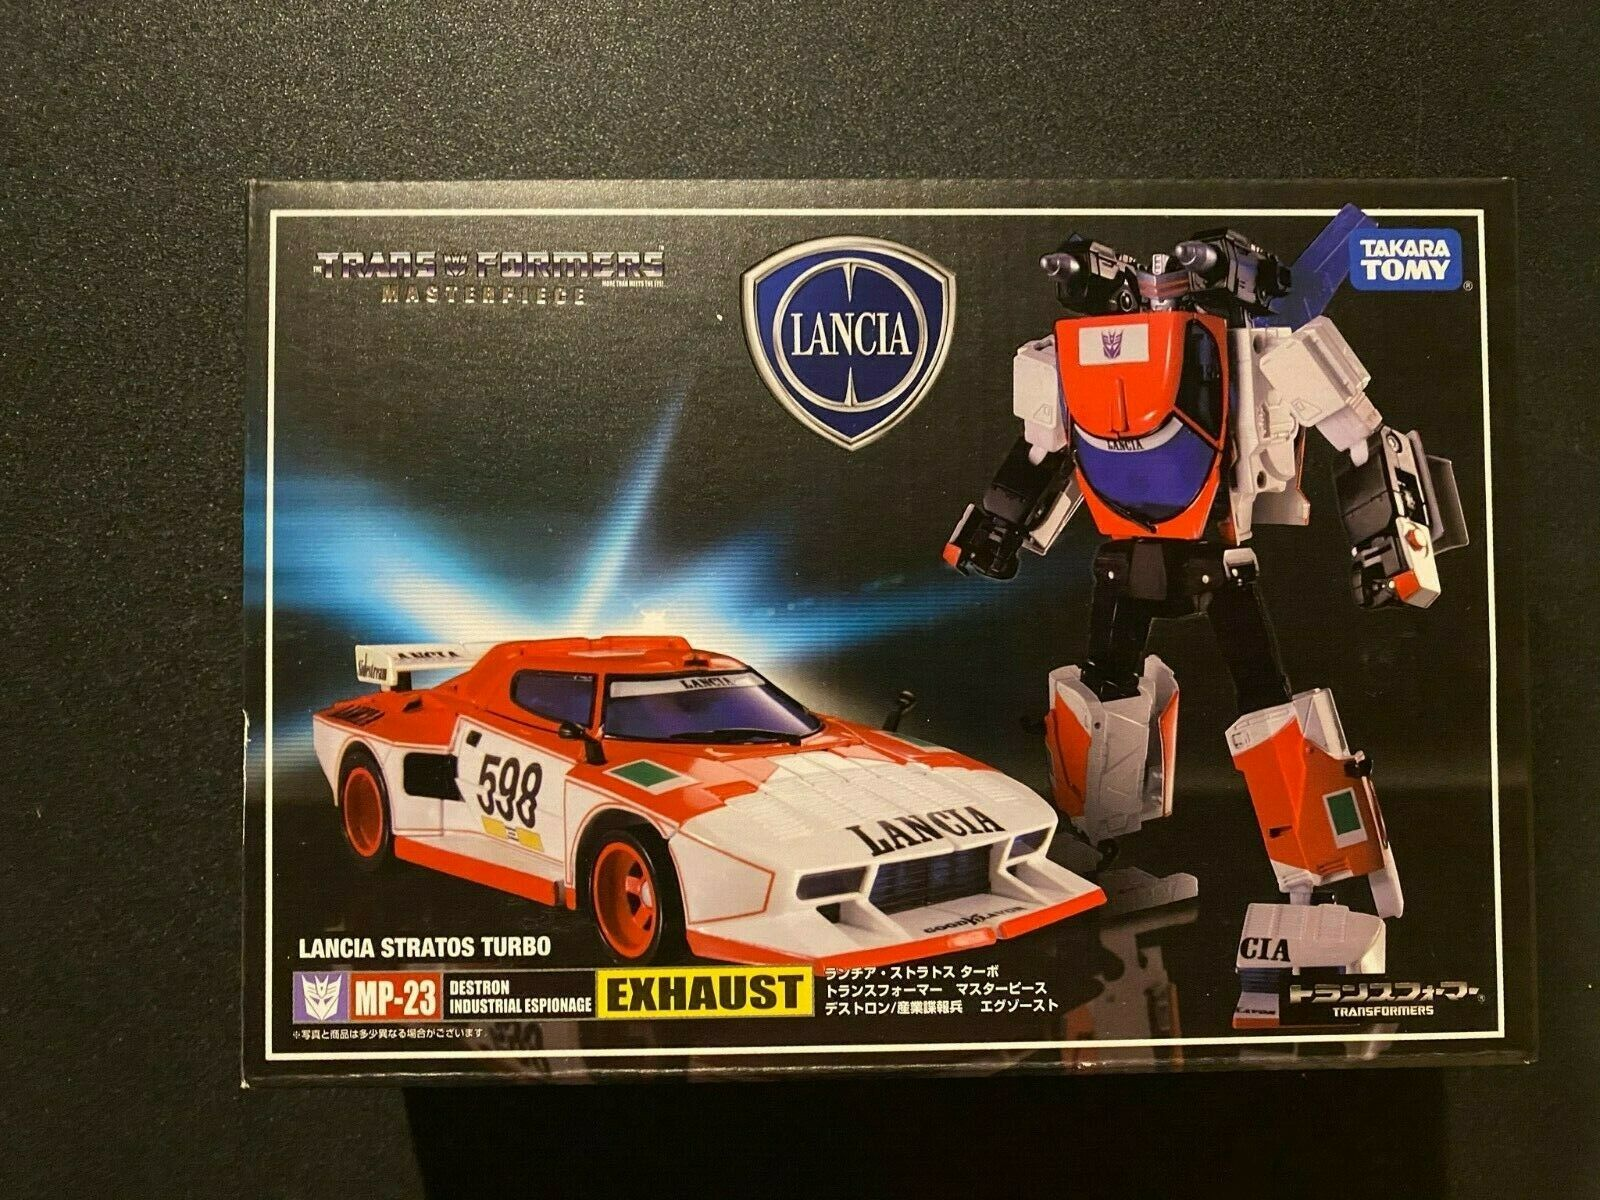 Transformers Masterpiece G1 MP-23 Exhaust Decepticons Action Figure New in Box